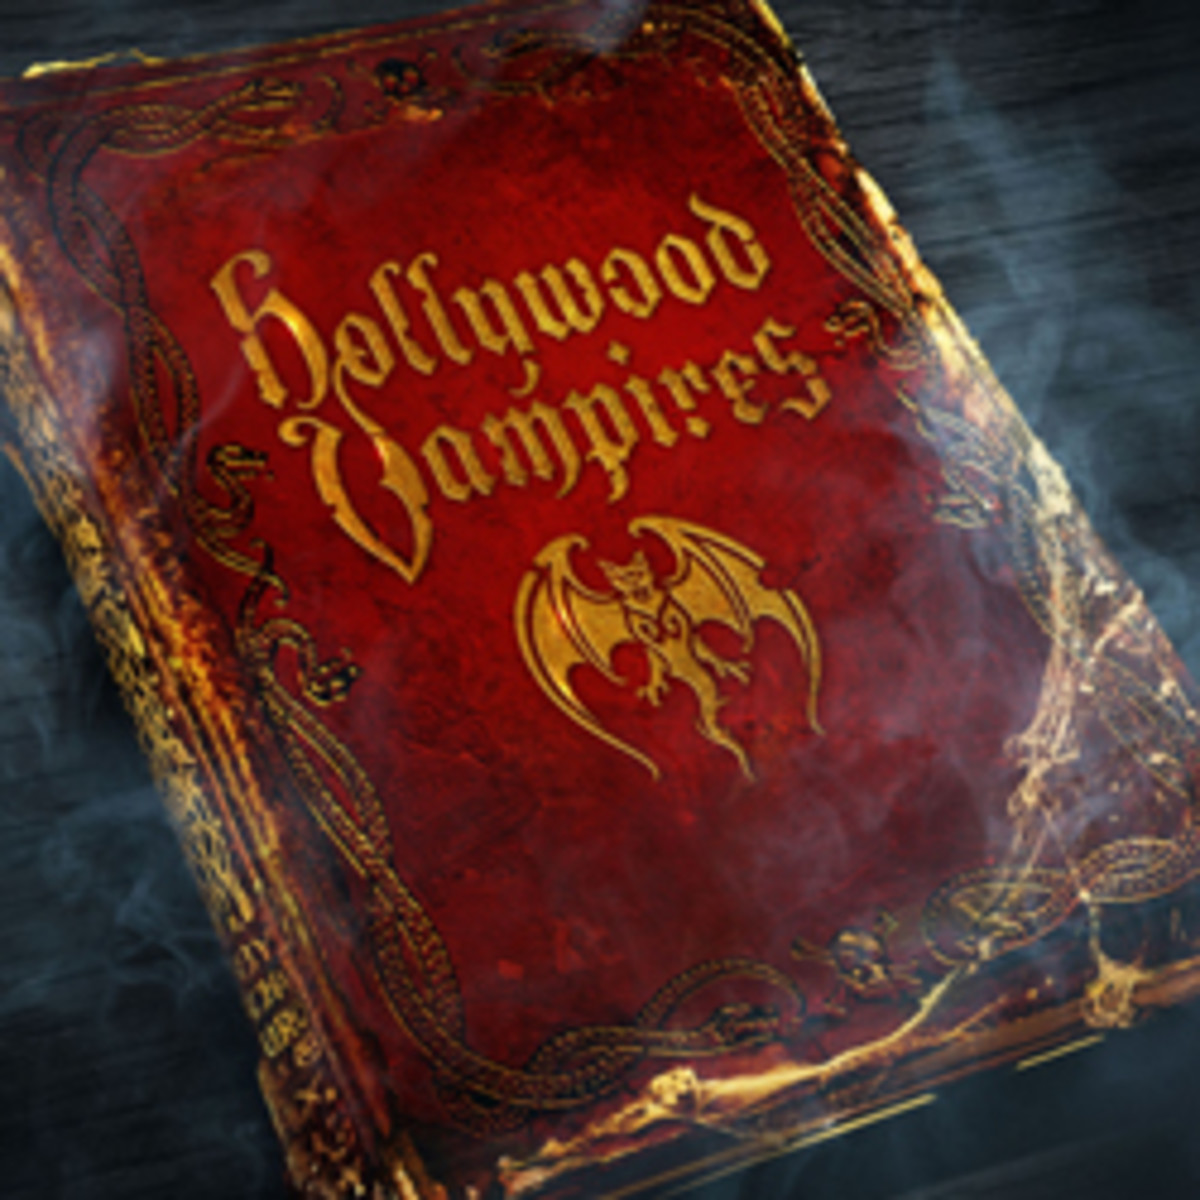 Hollywood Vampires - Album Cover (Final)